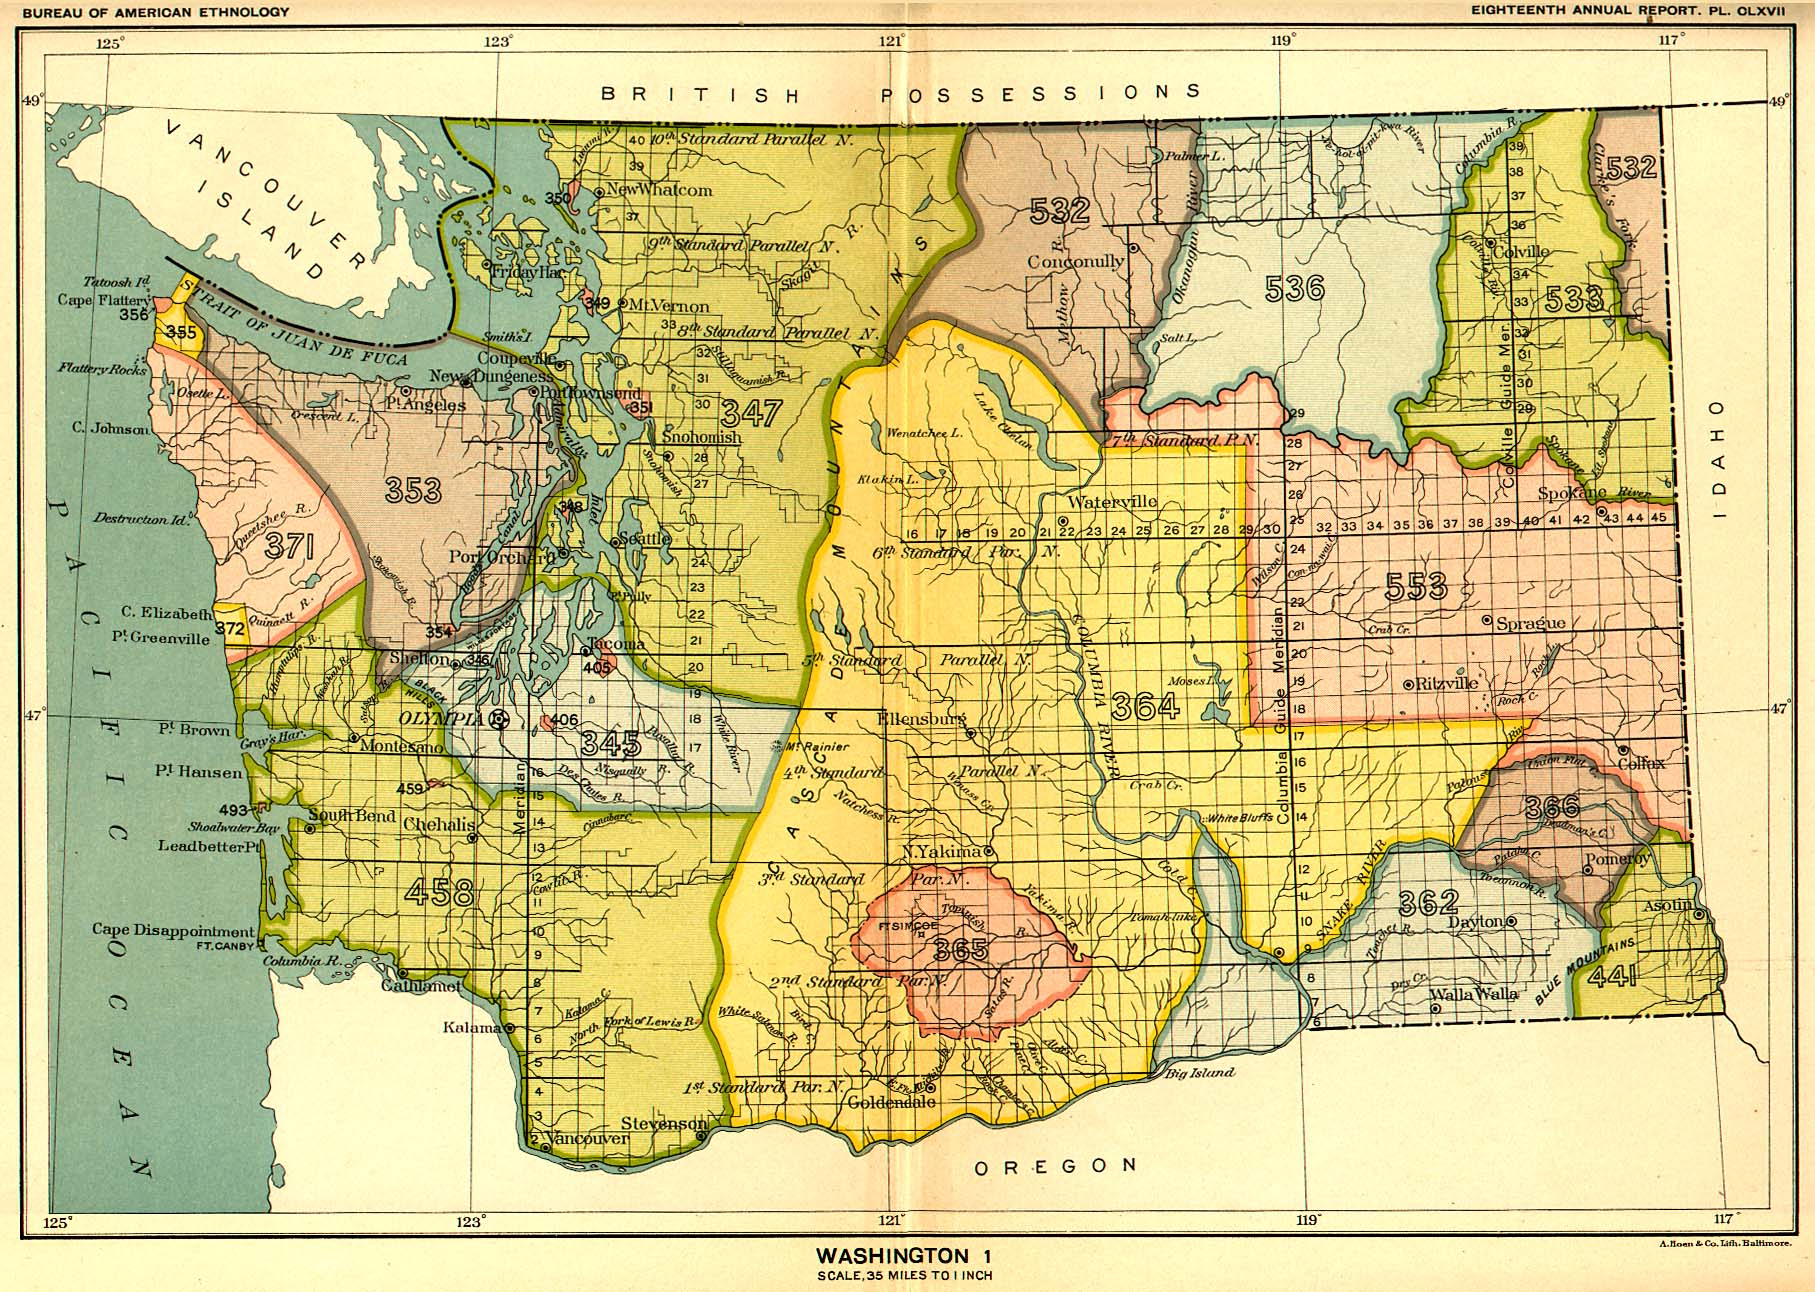 Indian Land Cessions In The U S Washington Map United - Map of indian lands in the us